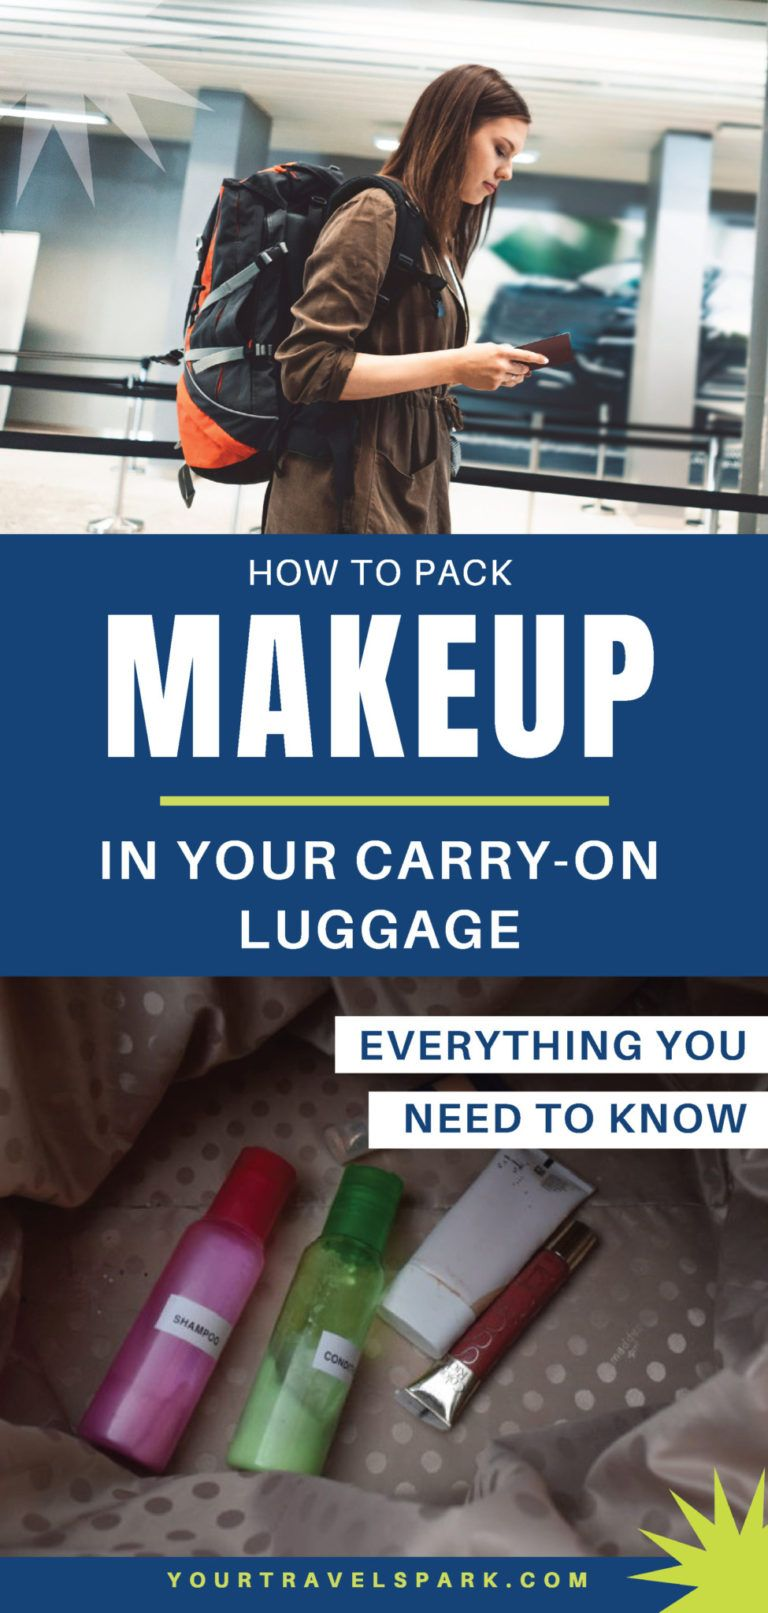 How to pack makeup in carryon luggage 2020 TSA travel